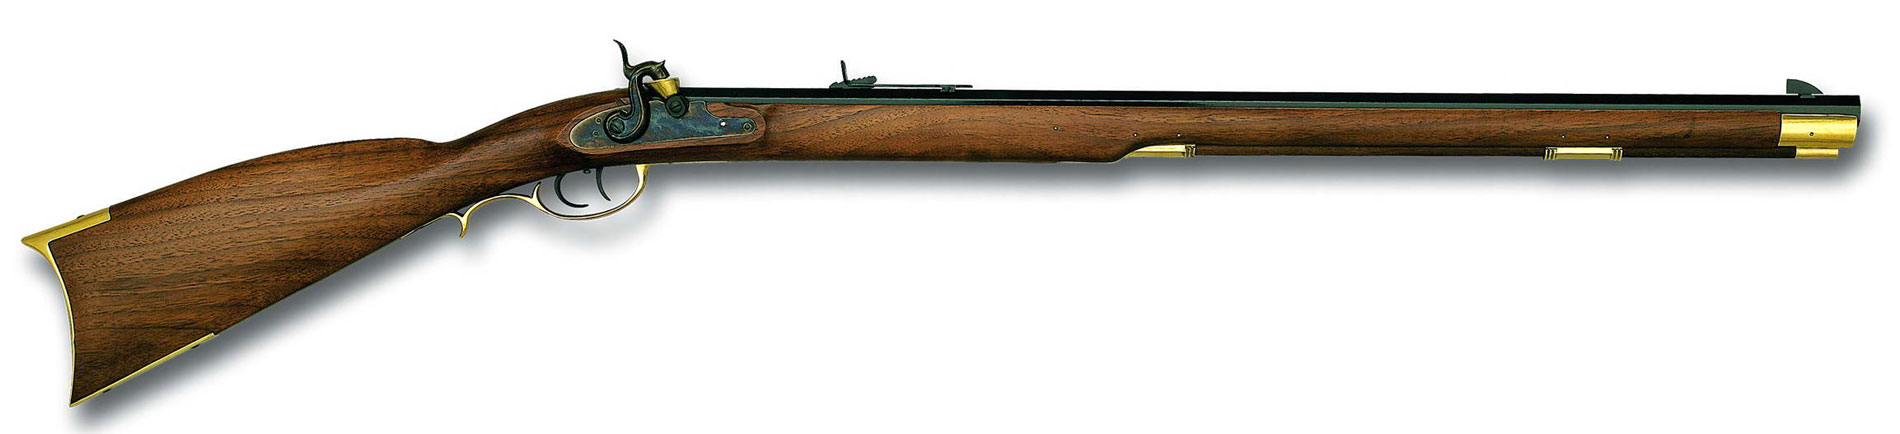 Early Firearms History - How Early Firearms Evolved